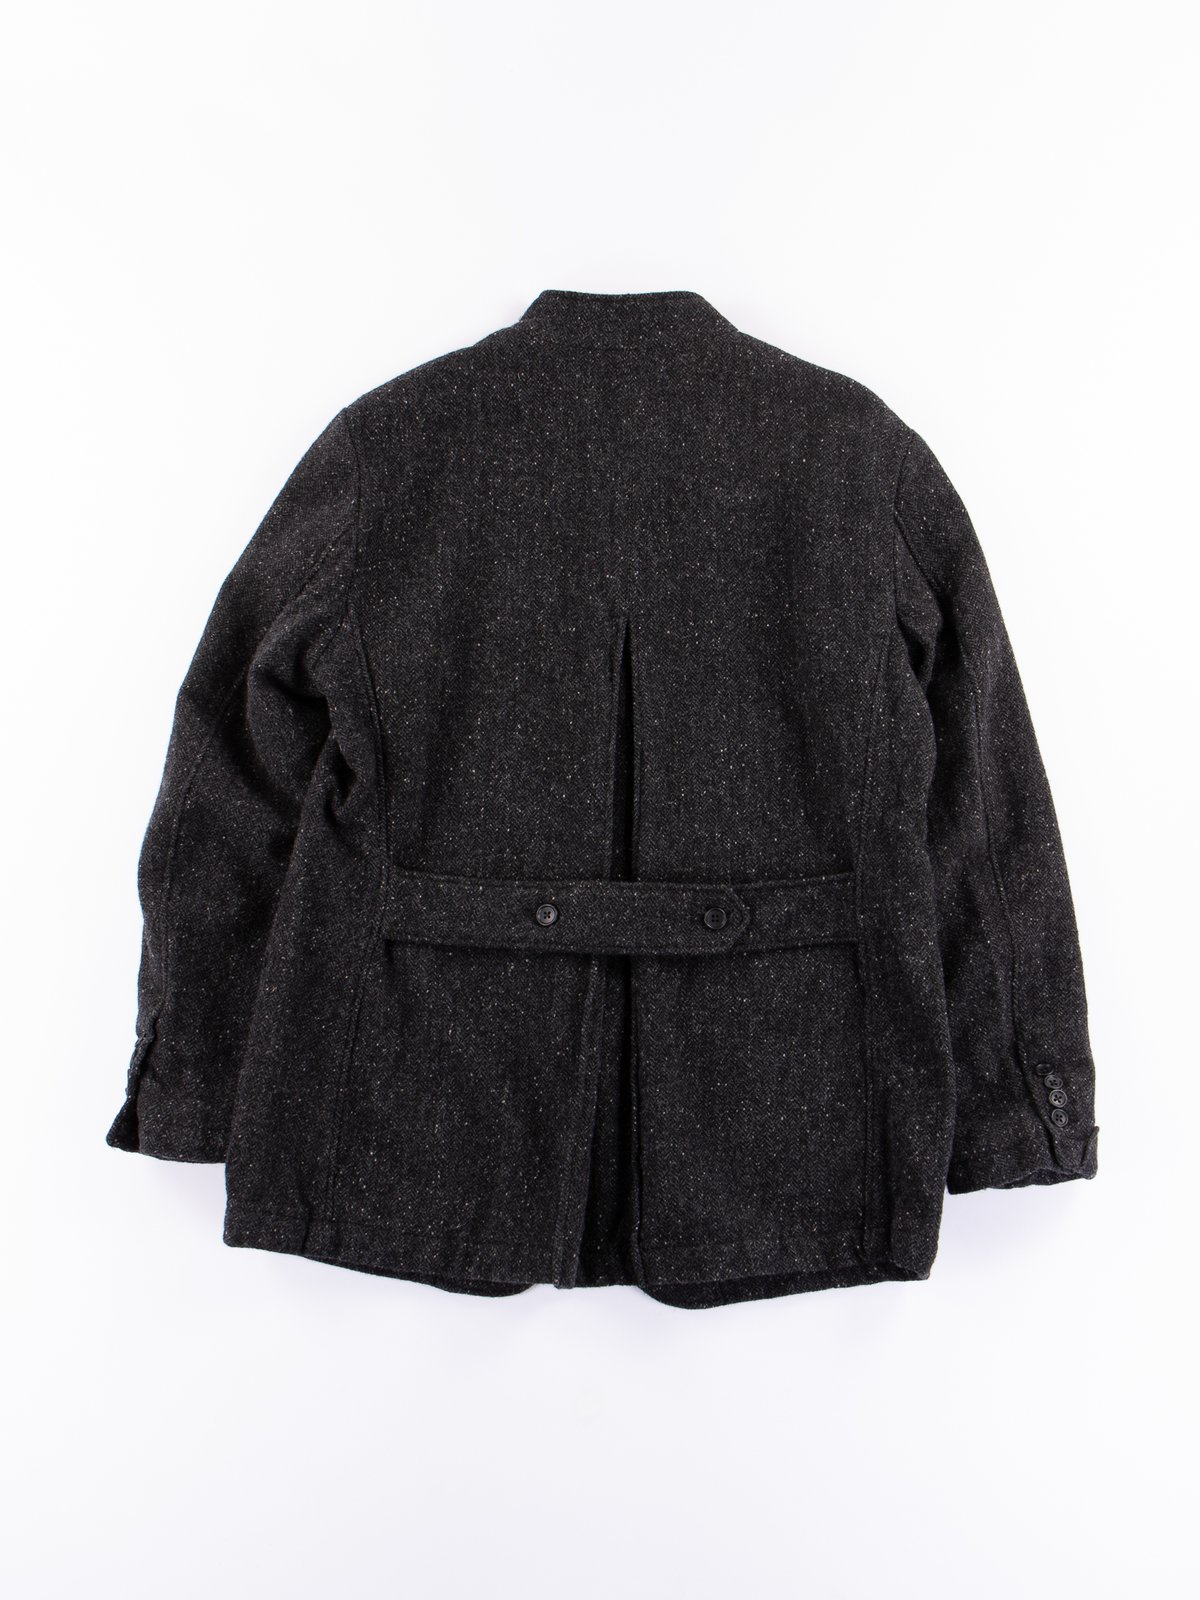 Charcoal HB Tweed Grim Jacket - Image 8